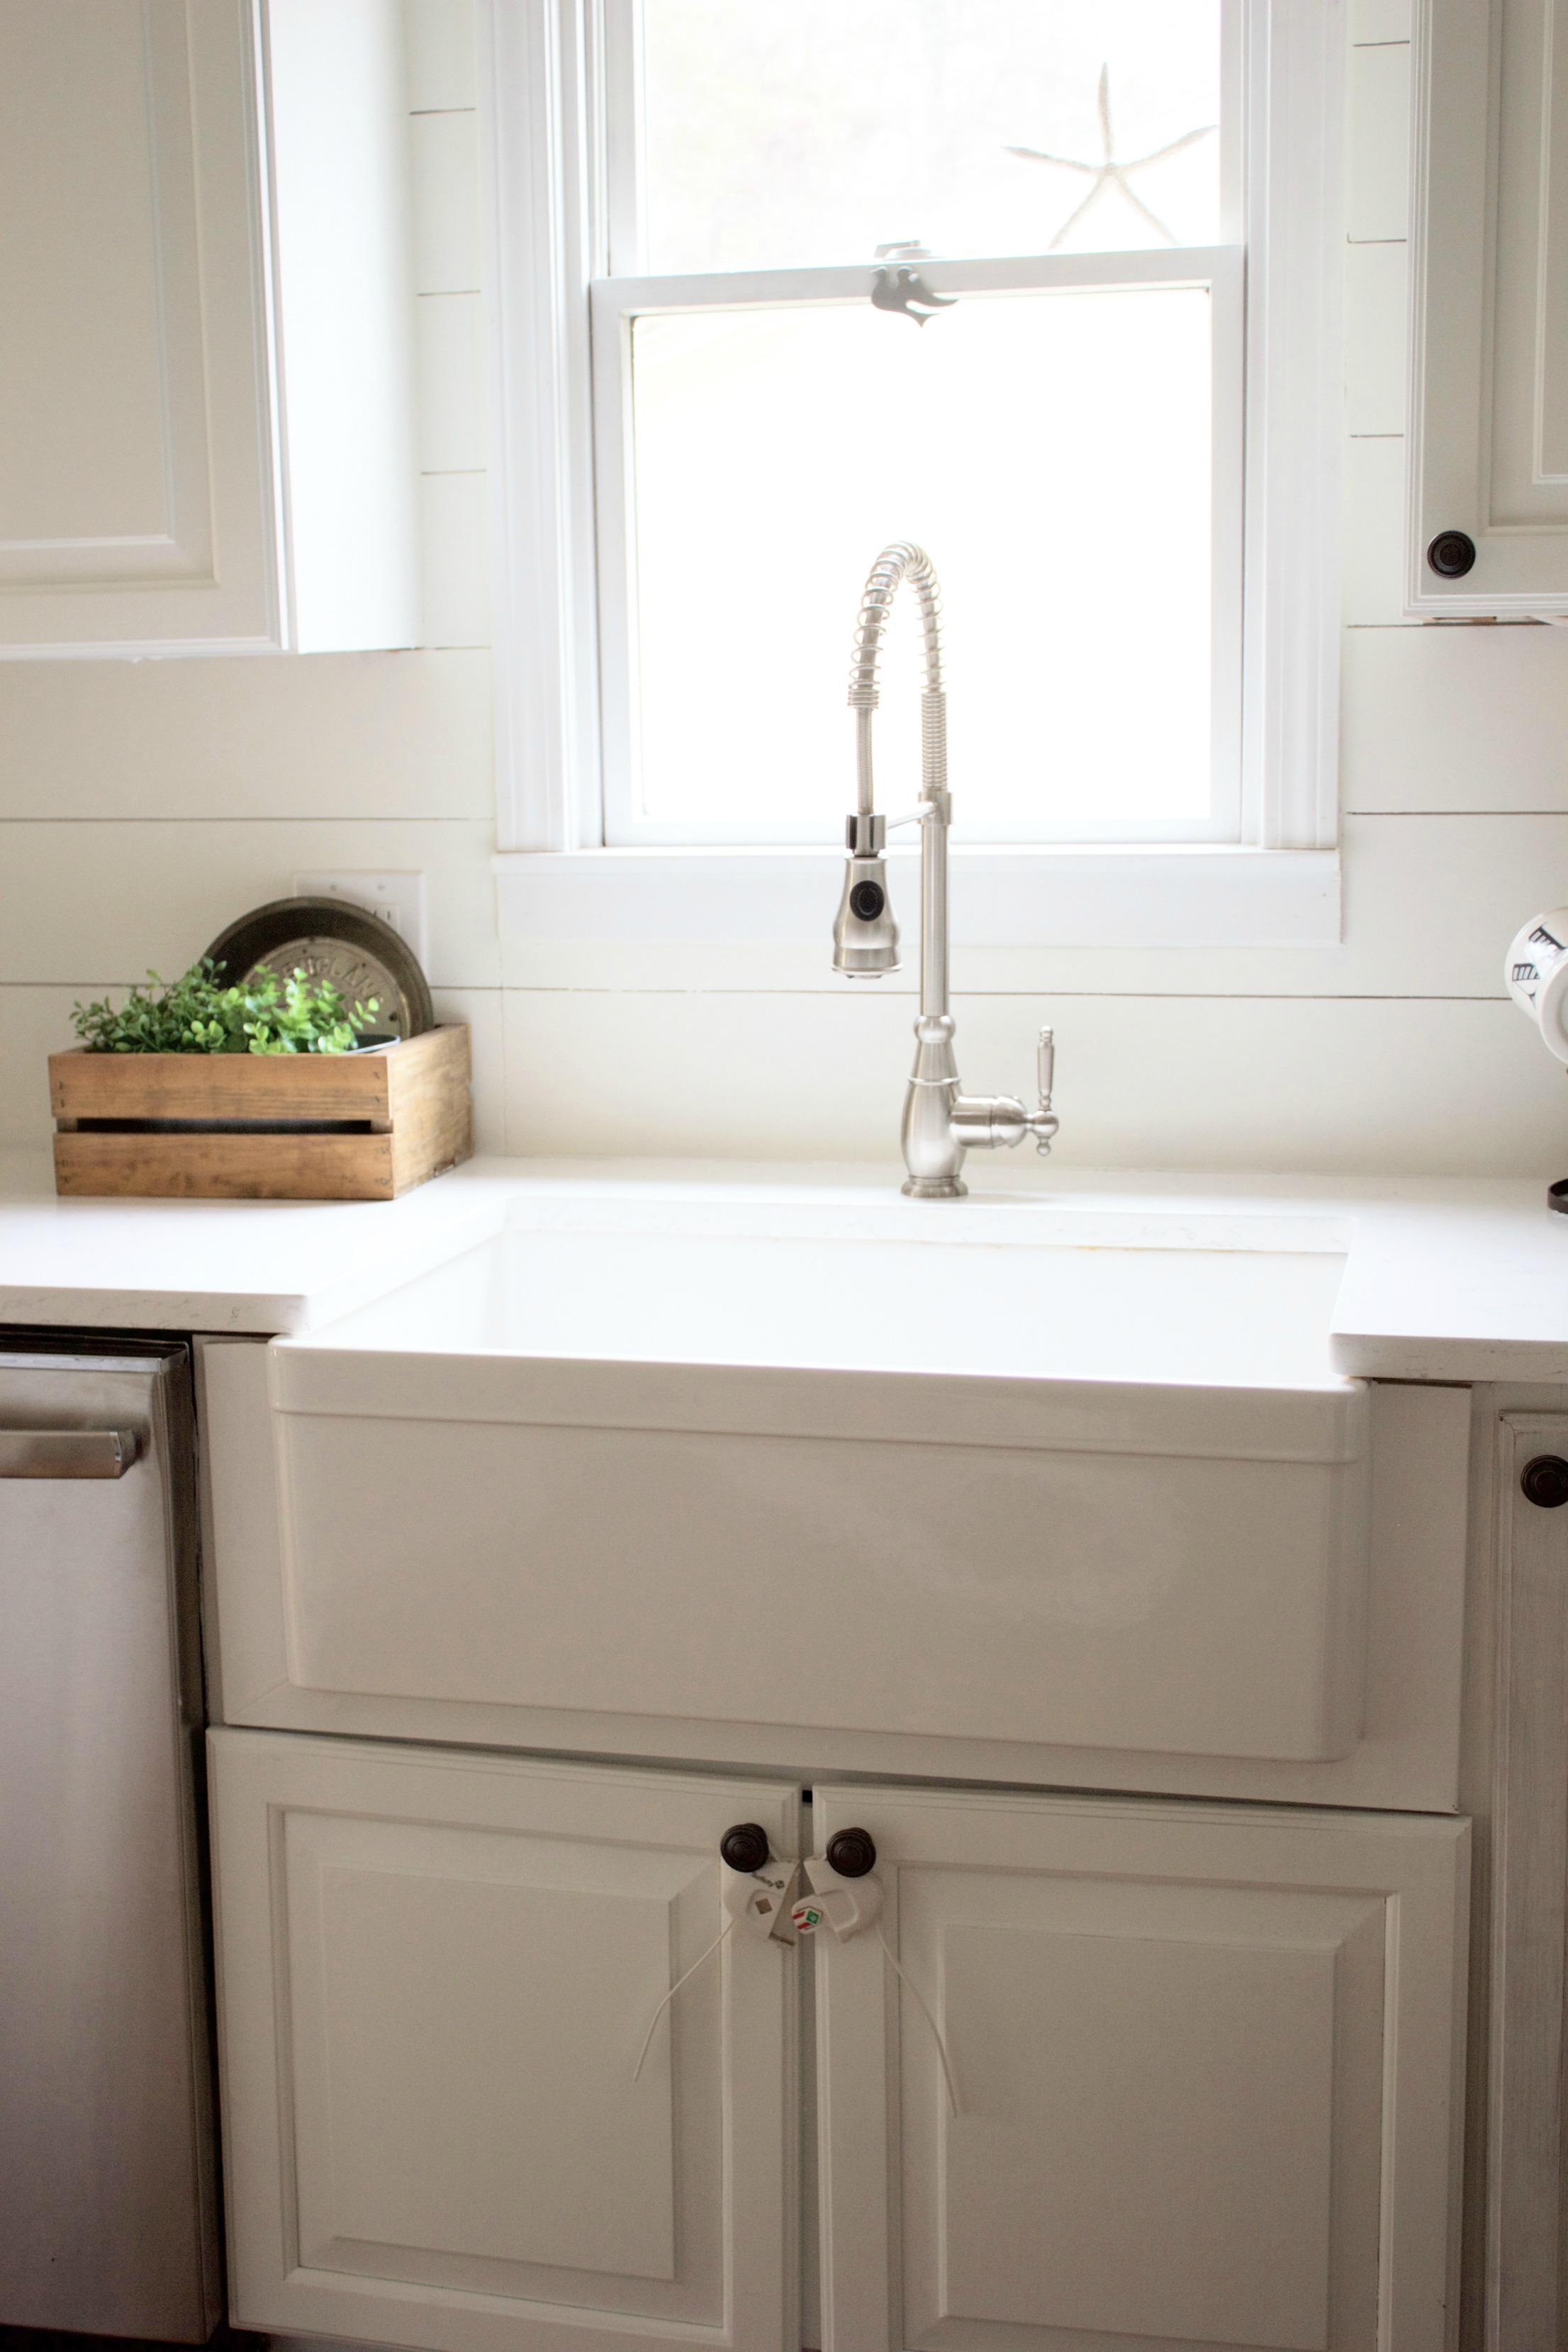 Home  How to Choose a Farmhouse Sink  Lauren McBride